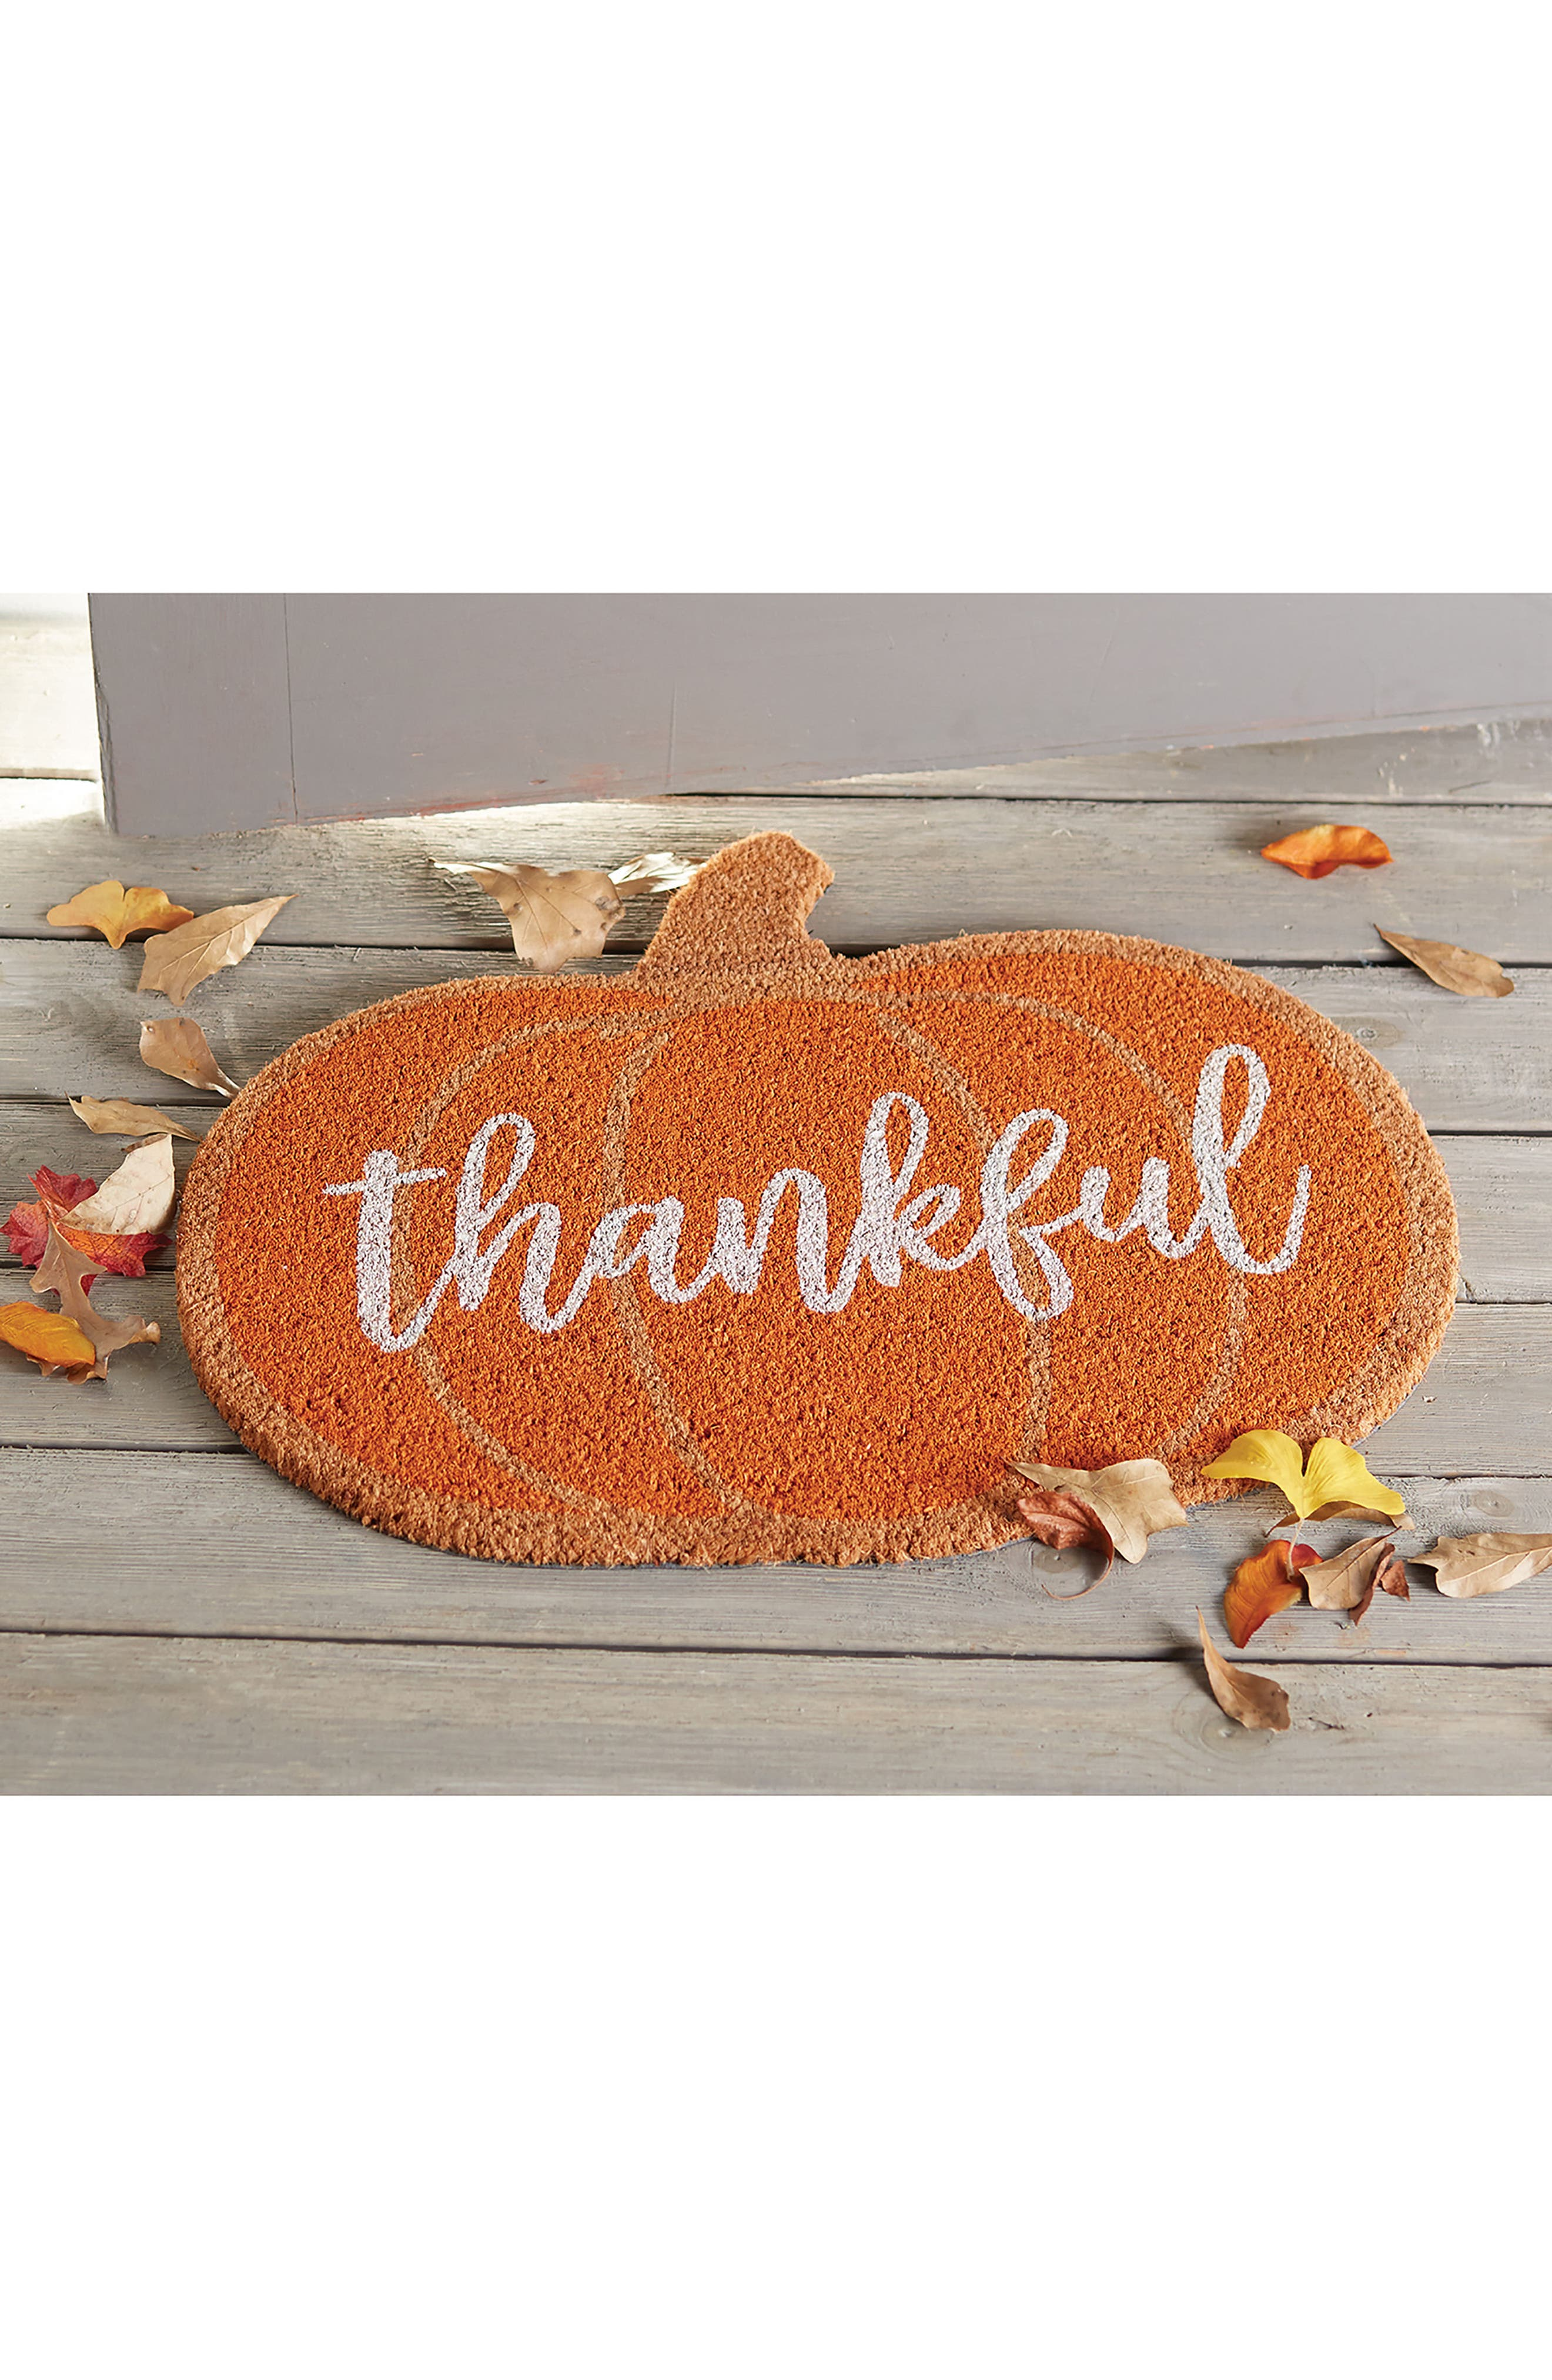 Thankful Coir Doormat,                             Alternate thumbnail 2, color,                             200